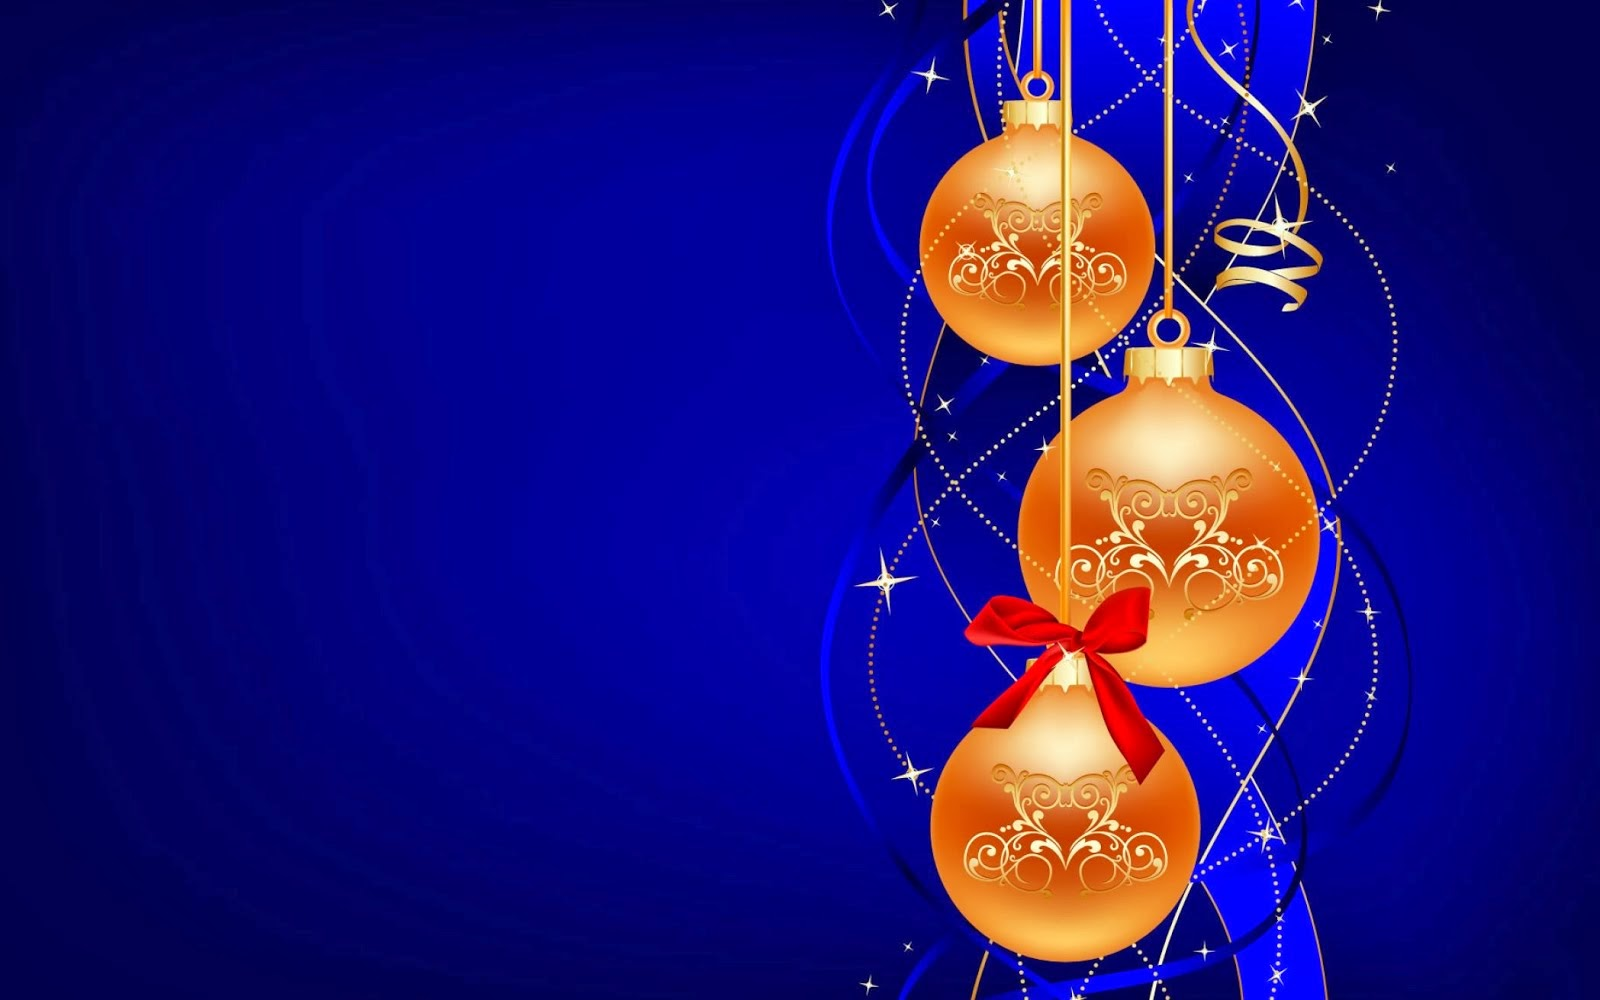 Animated Christmas Wallpaper For Windows 7   Wallpaper Animated 1600x1000